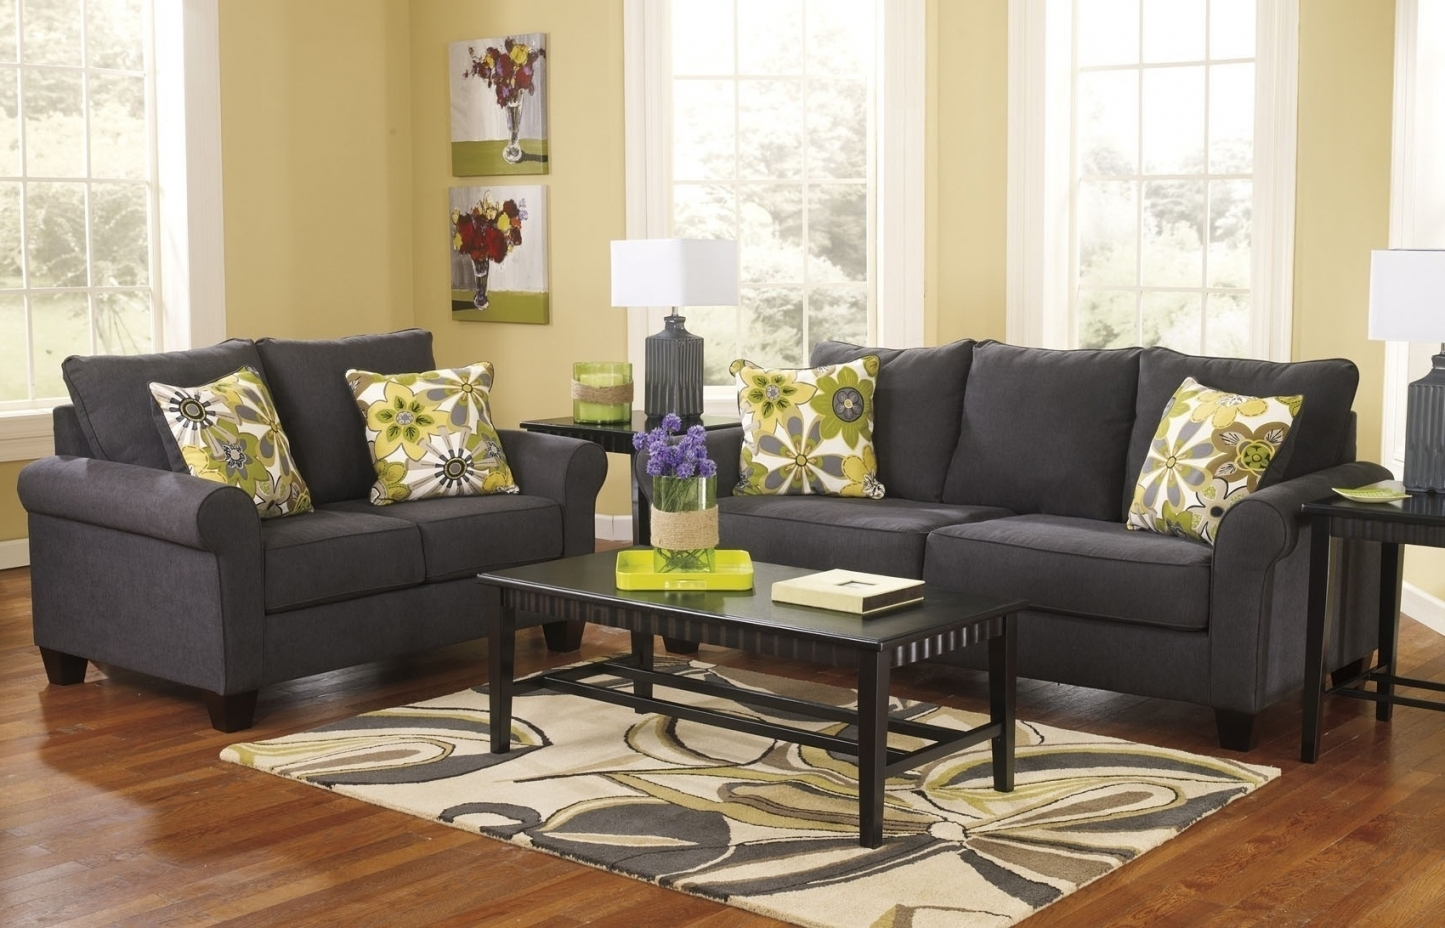 Trendy Sectional Sofas Under 300 Inside Sofa : Dual Reclining Loveseat Sectional Sofas Under 300 Couches (View 14 of 15)